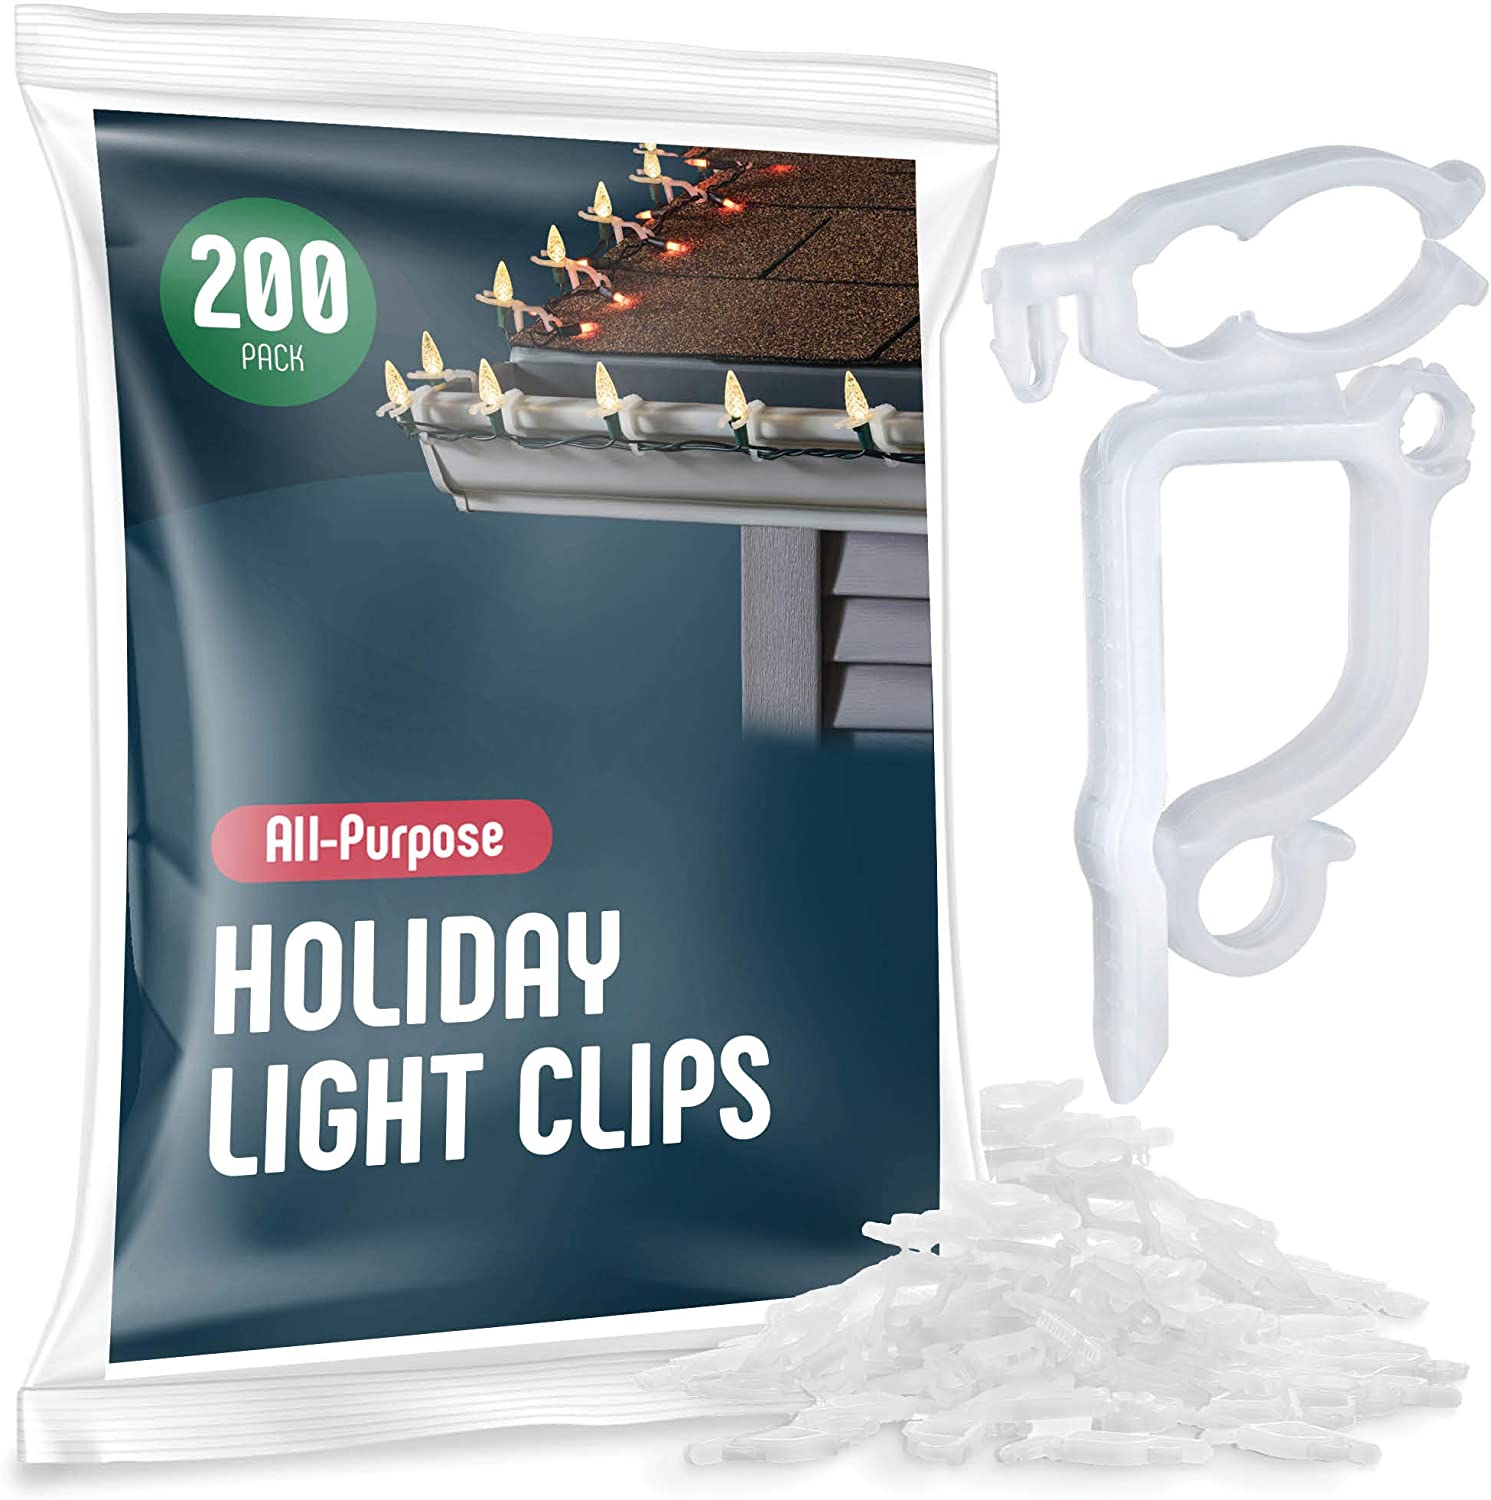 All-Purpose Holiday Light Clips [Set of 200] Christmas Light Clips, Outdoor Light Clips - Mount to shingles & gutters - Works with Mini, C6, C7, C9, Rope, Icicle Lights - No tools required - USA Made